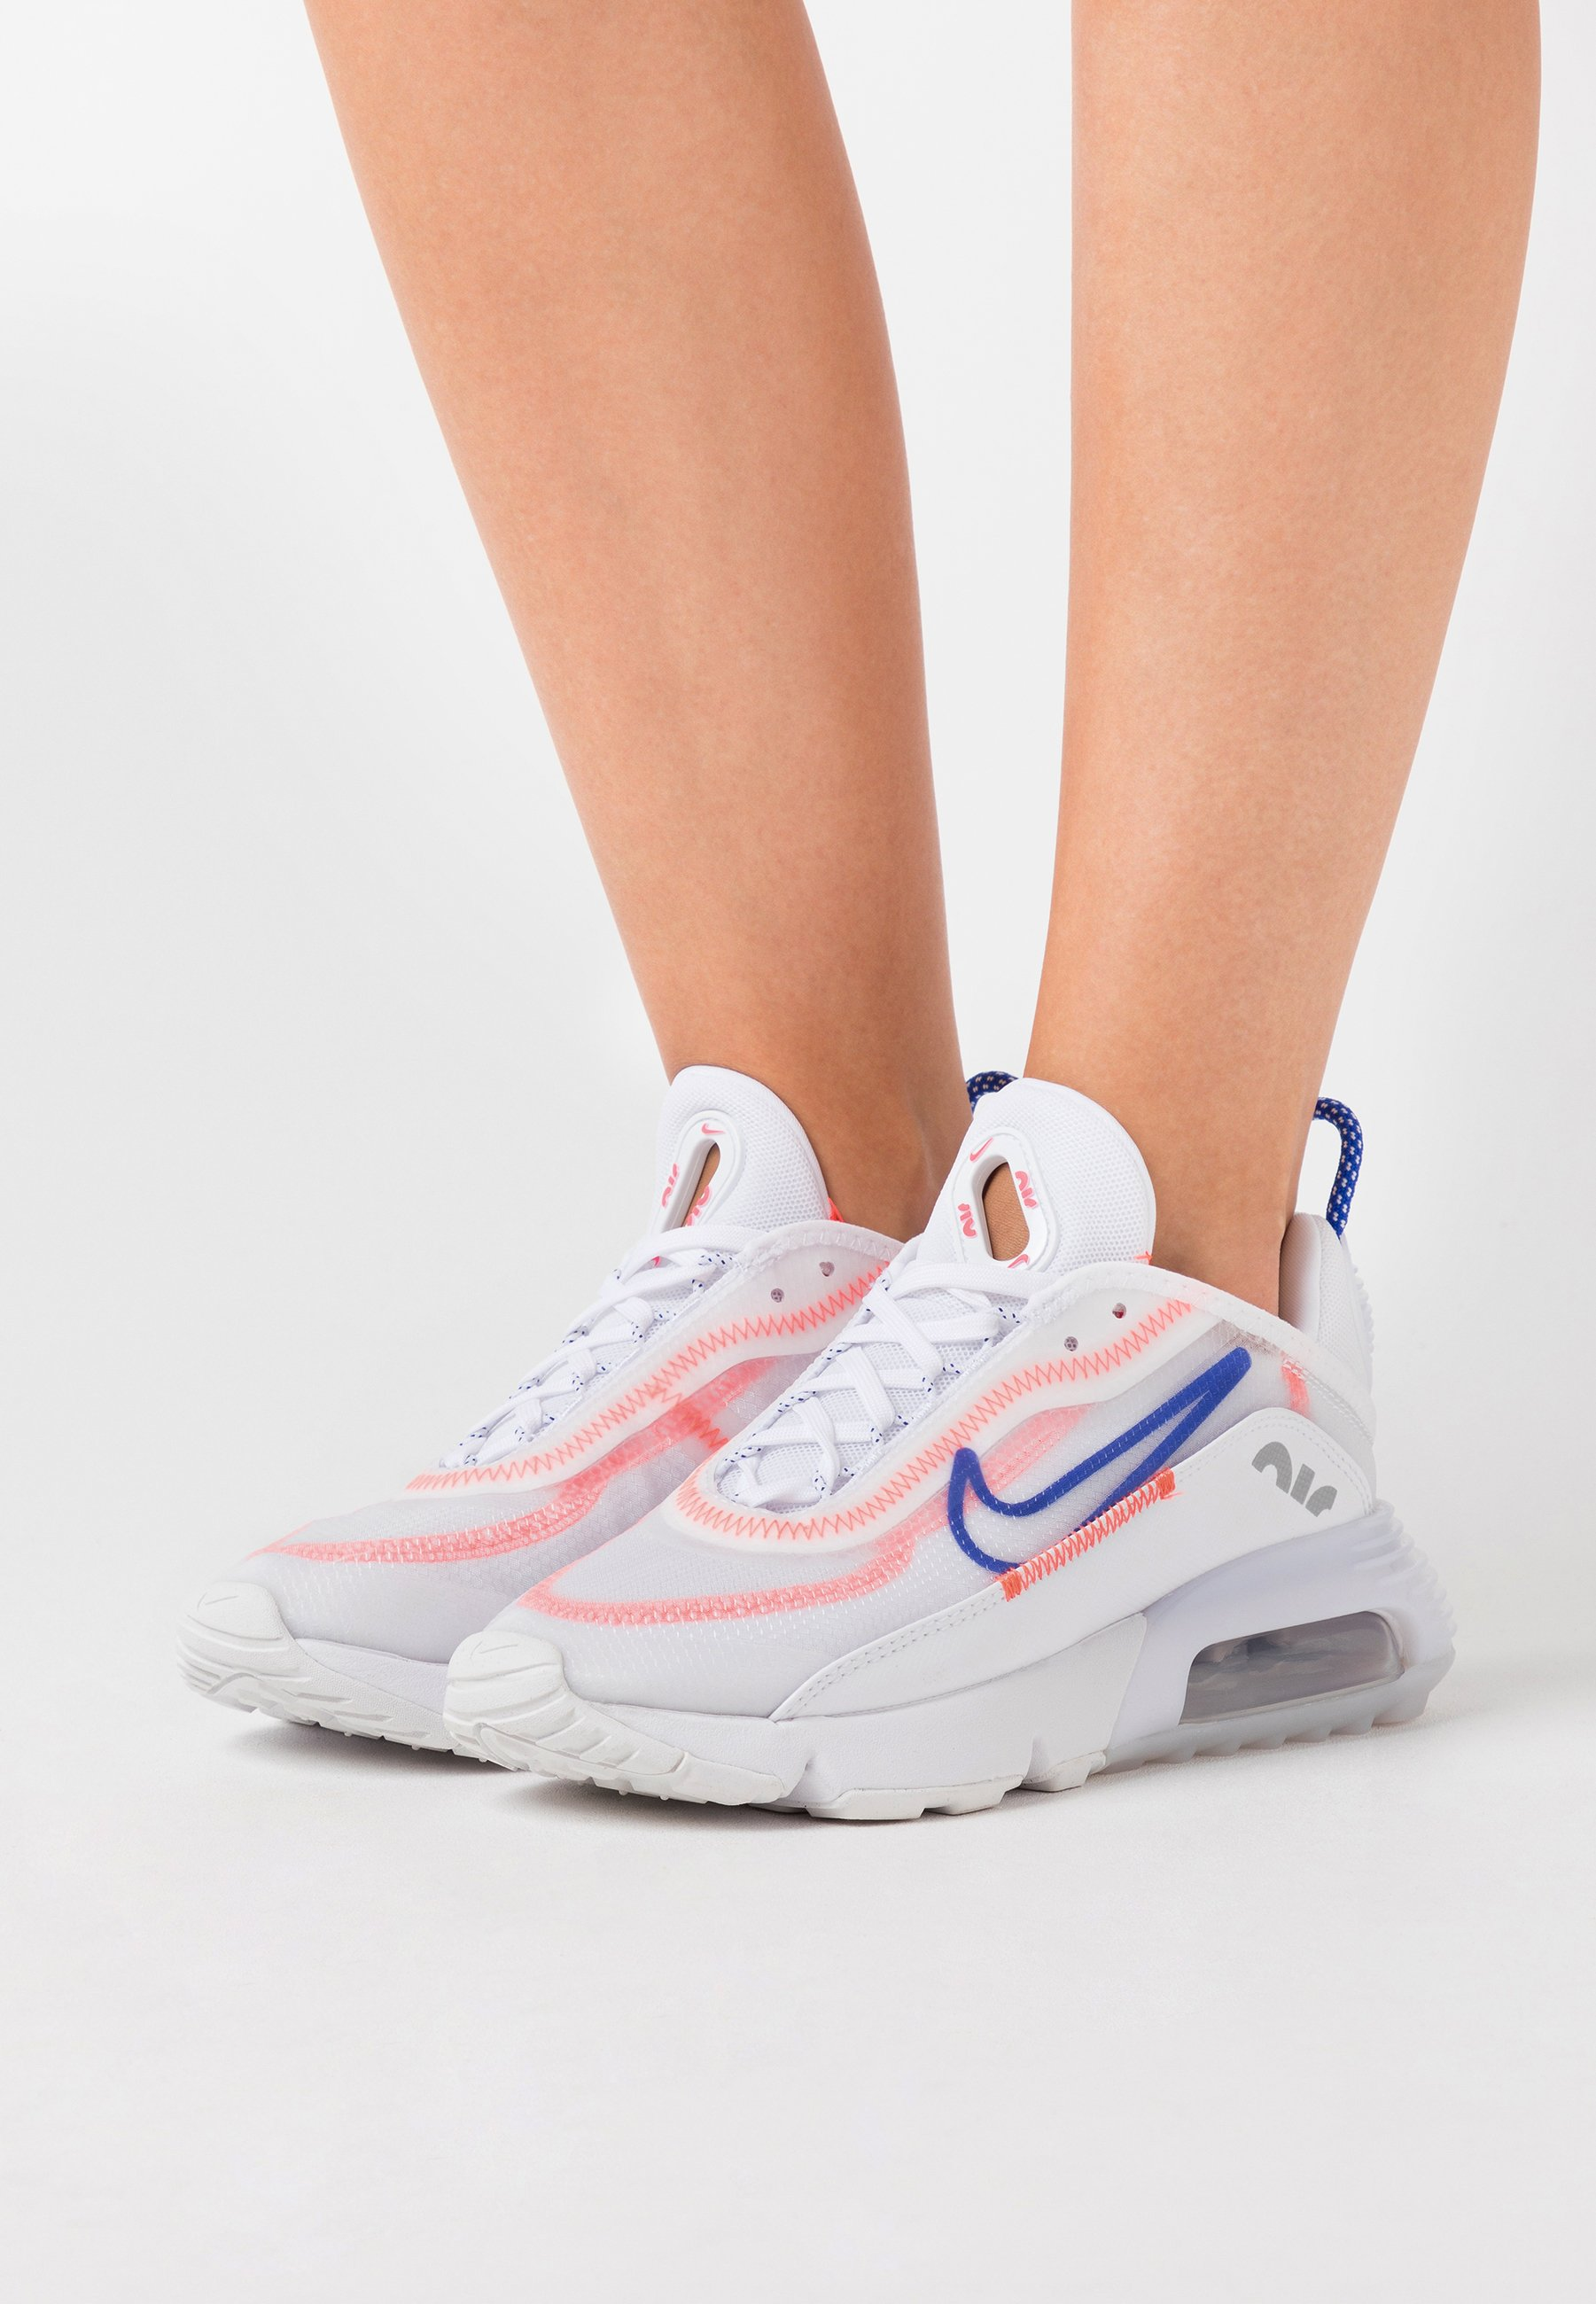 Gutes Angebot Nike Sportswear AIR MAX 2090 - Sneaker low - white/racer blue/flash crimson/metallic silver | Damenbekleidung 2020